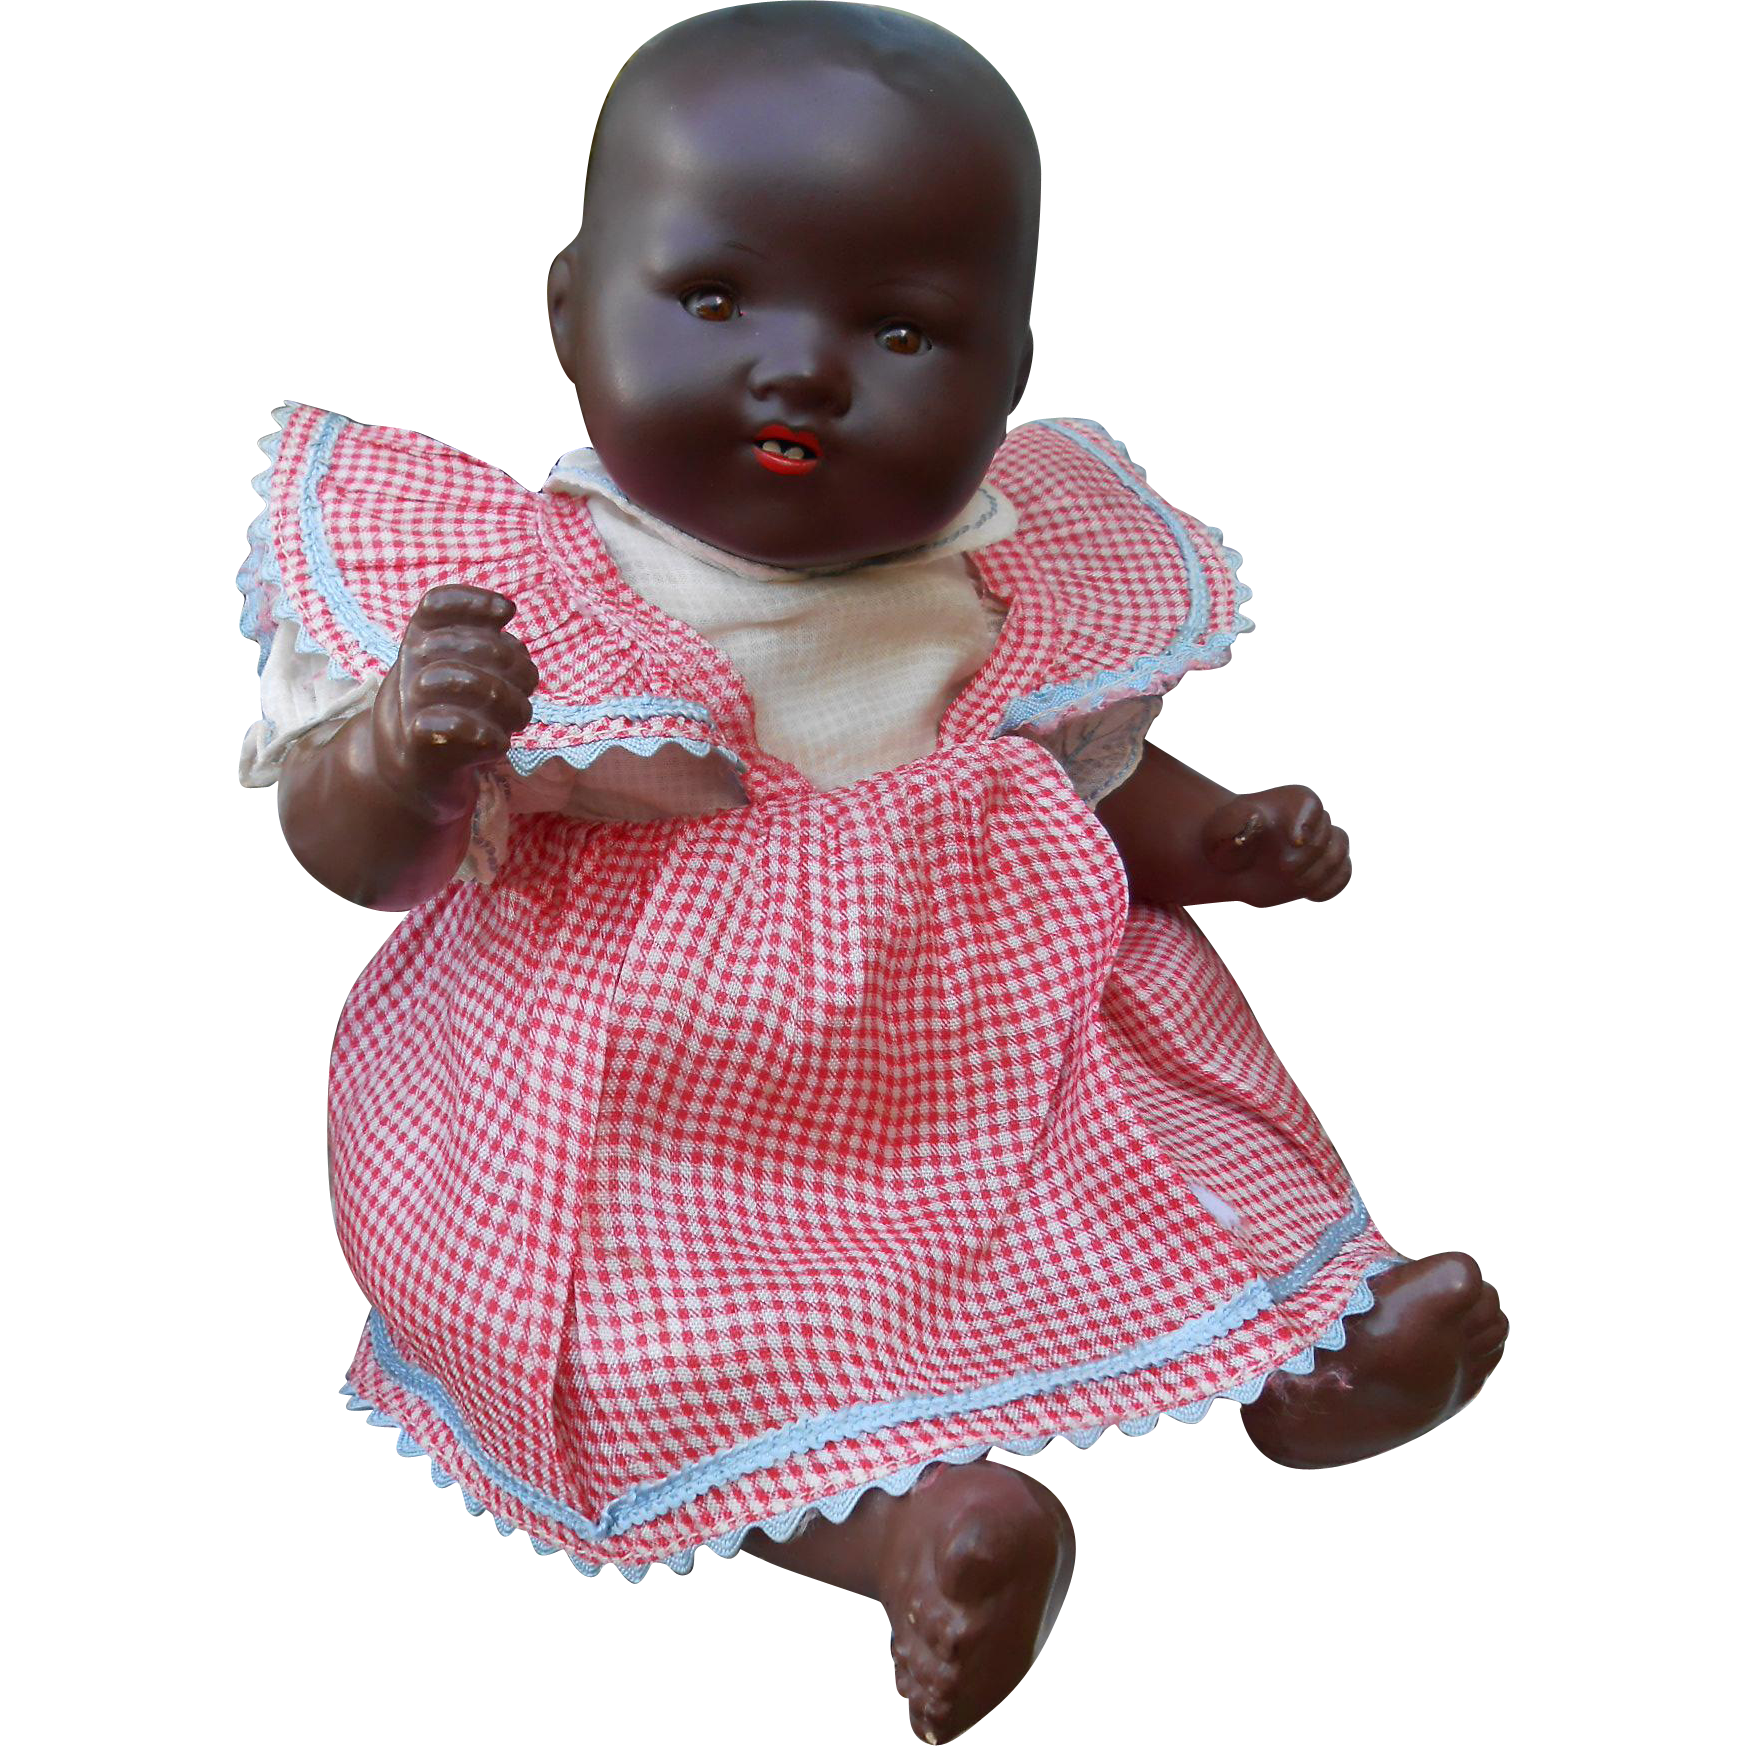 cute small mulatto baby armand marseille, mold 351, 12 inches